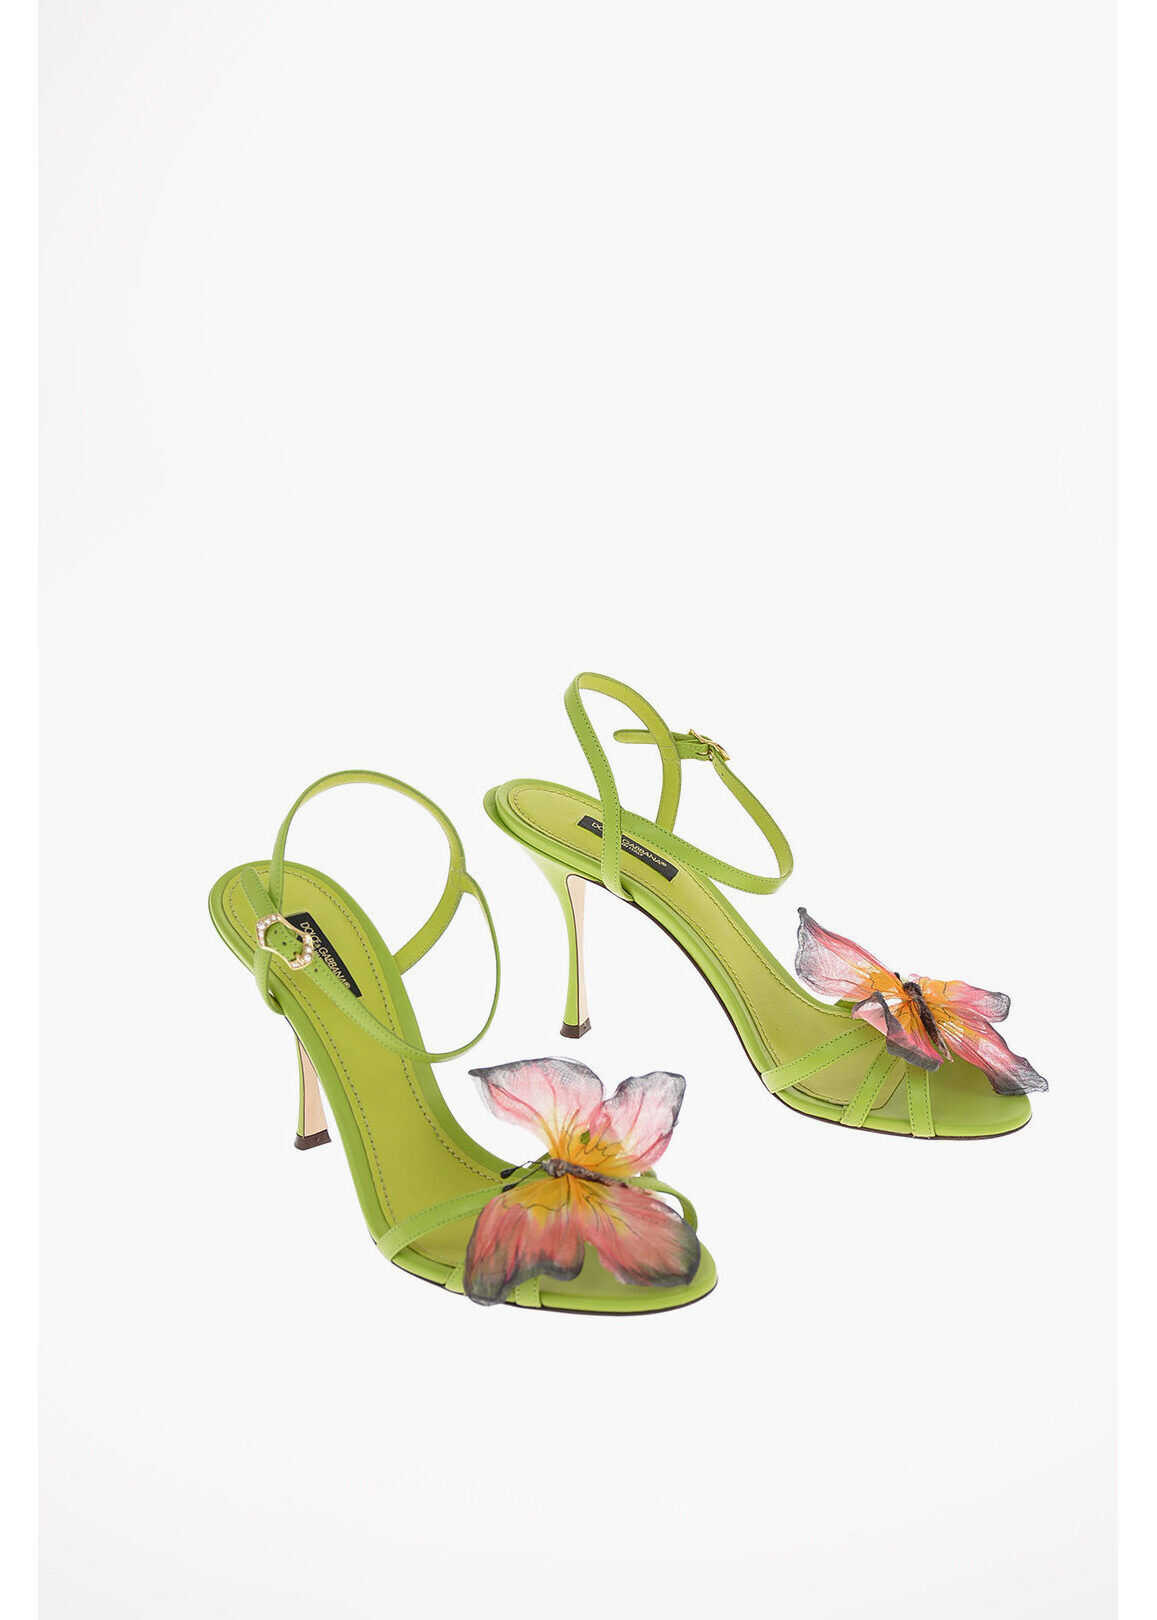 Dolce & Gabbana Soft Leather Sandals with Butterfly Detail 10 Cm GREEN imagine b-mall.ro